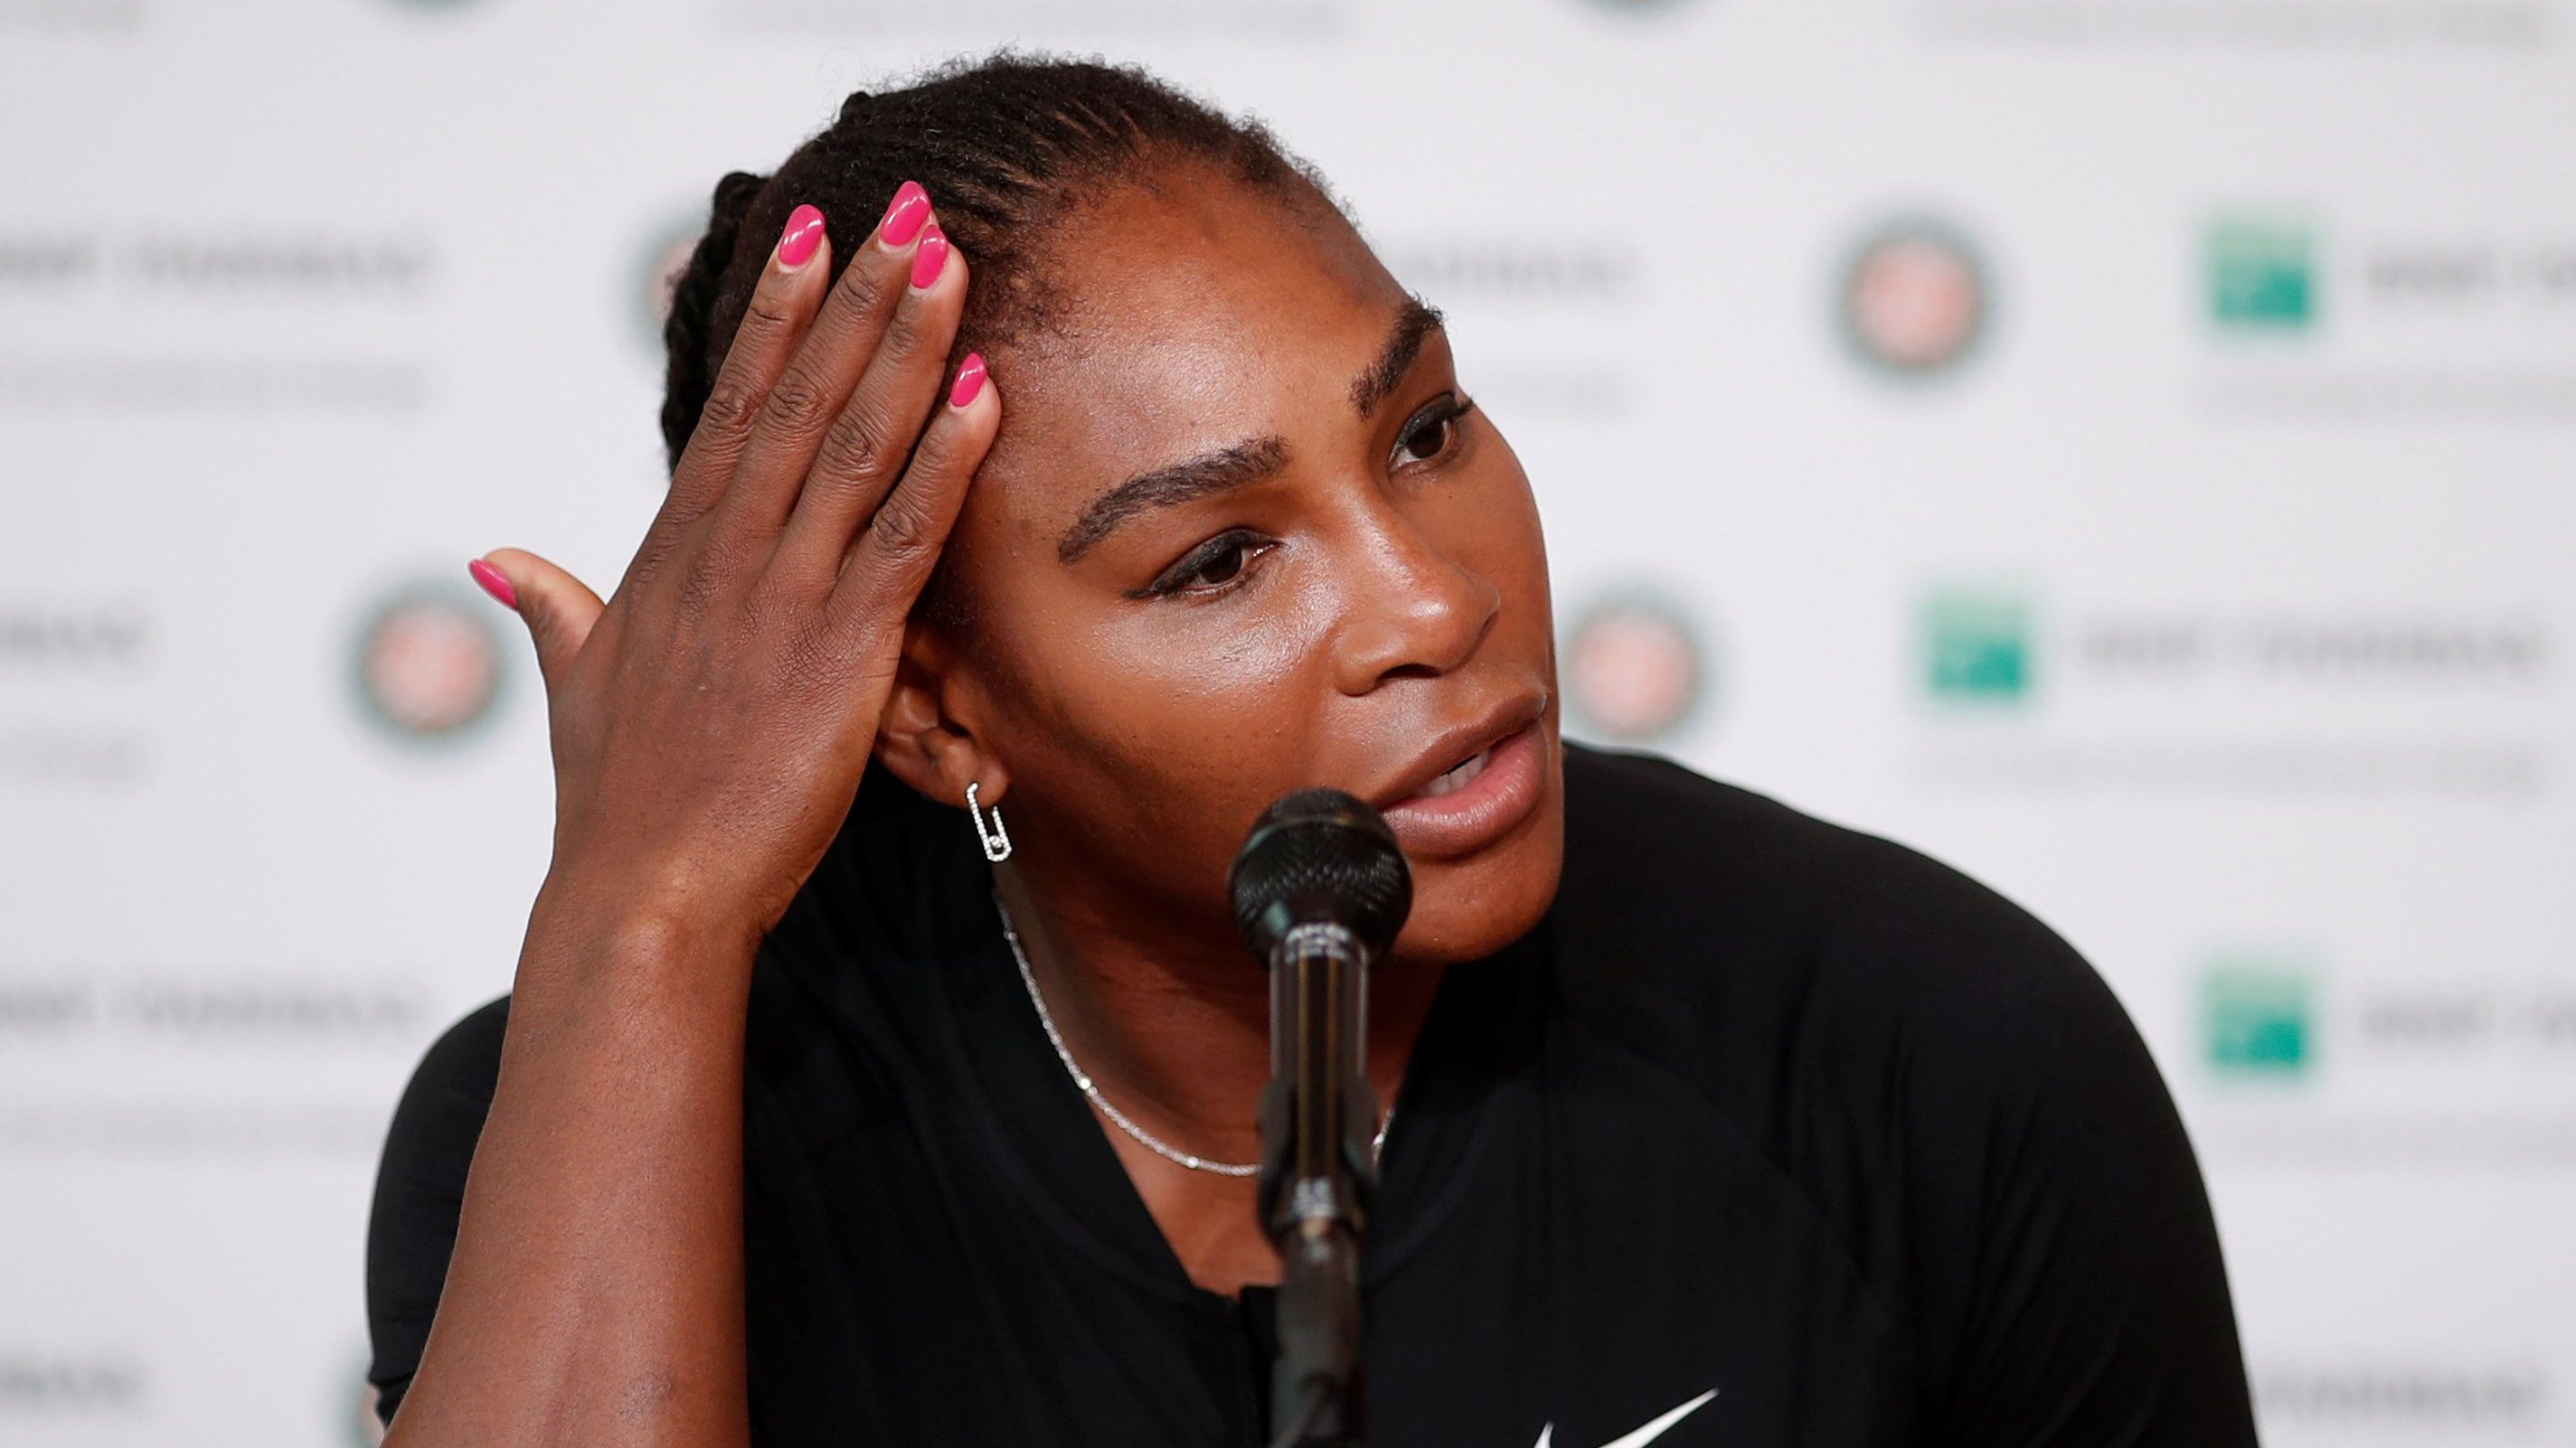 Tennis - French Open - Roland Garros, Paris, France - June 4, 2018   Serena Williams of the U.S during a press conference   REUTERS/Benoit Tessier - RC1CBAB07C70